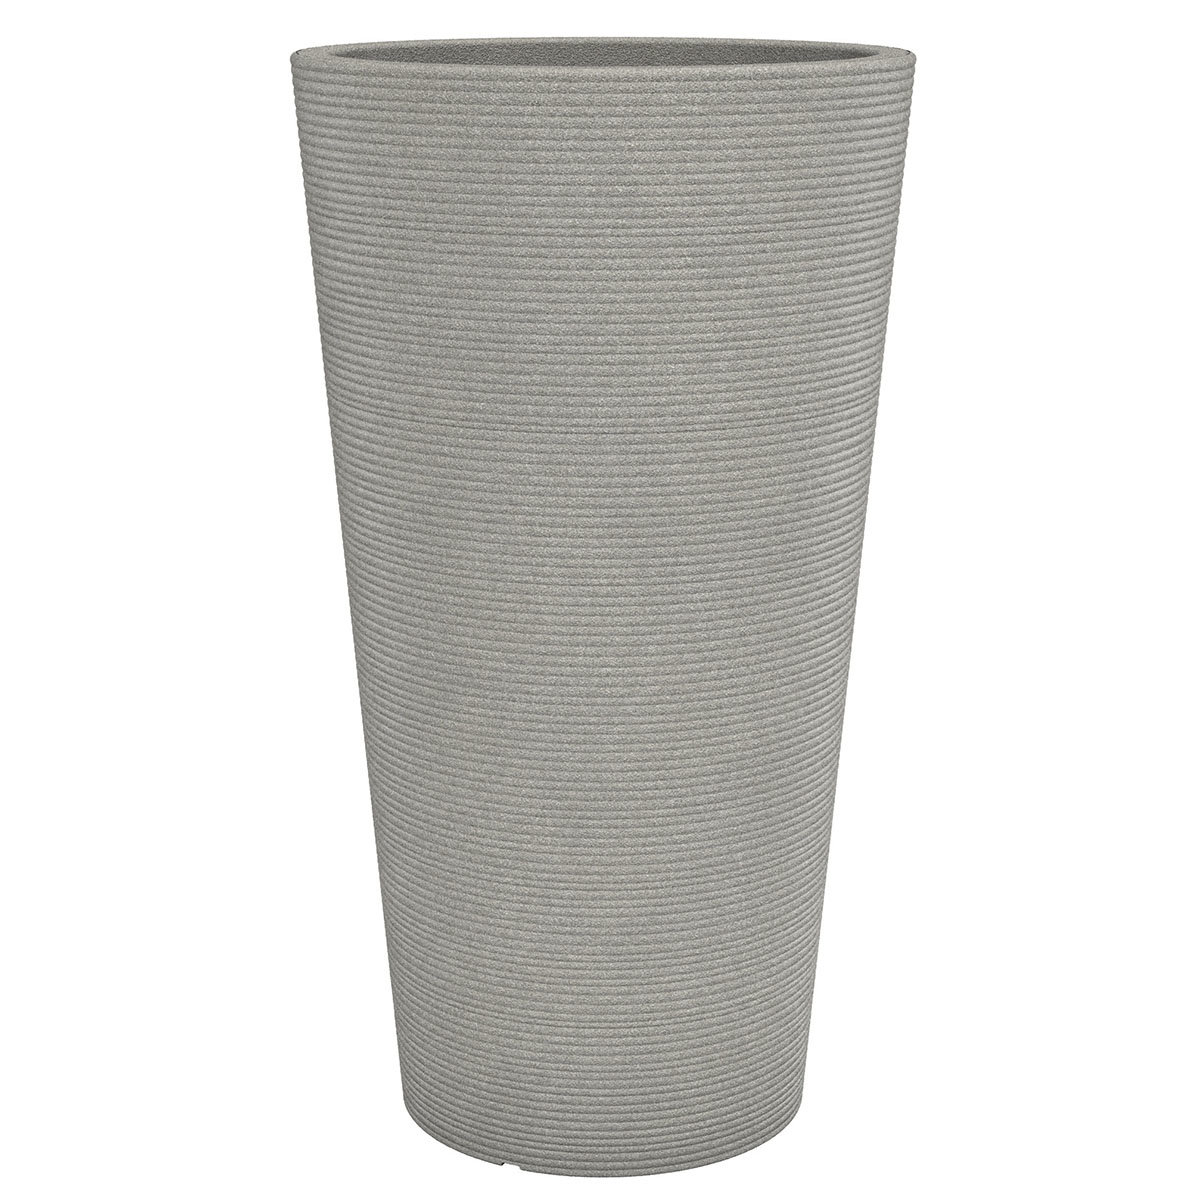 Pflanzkübel High Coneo, 40 x 70cm, Taupe